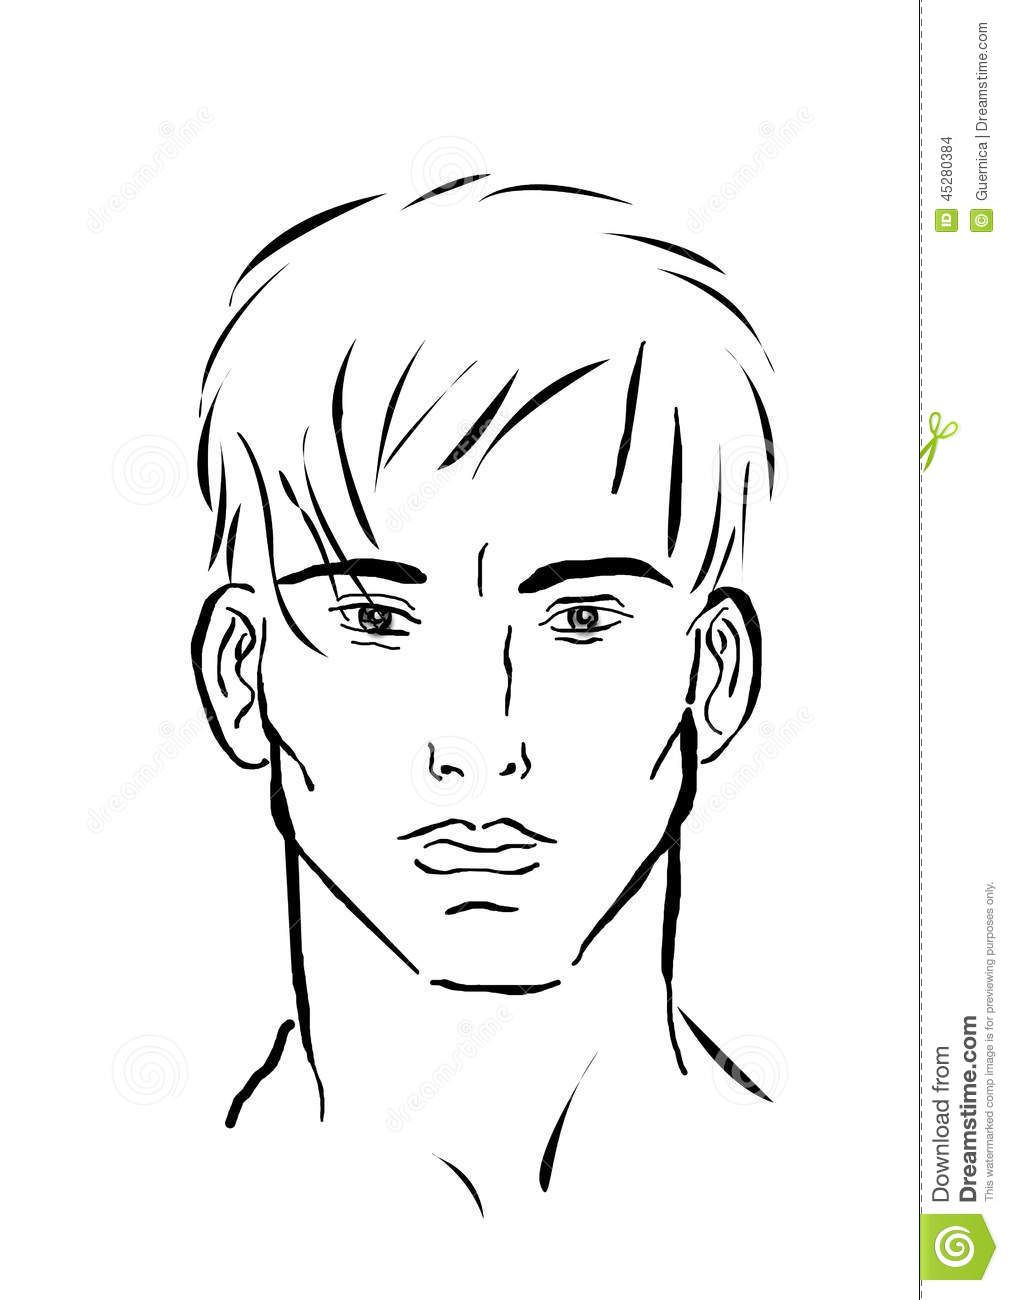 Simple Sketched Faces Google Search Boy Face Male Sketch Face